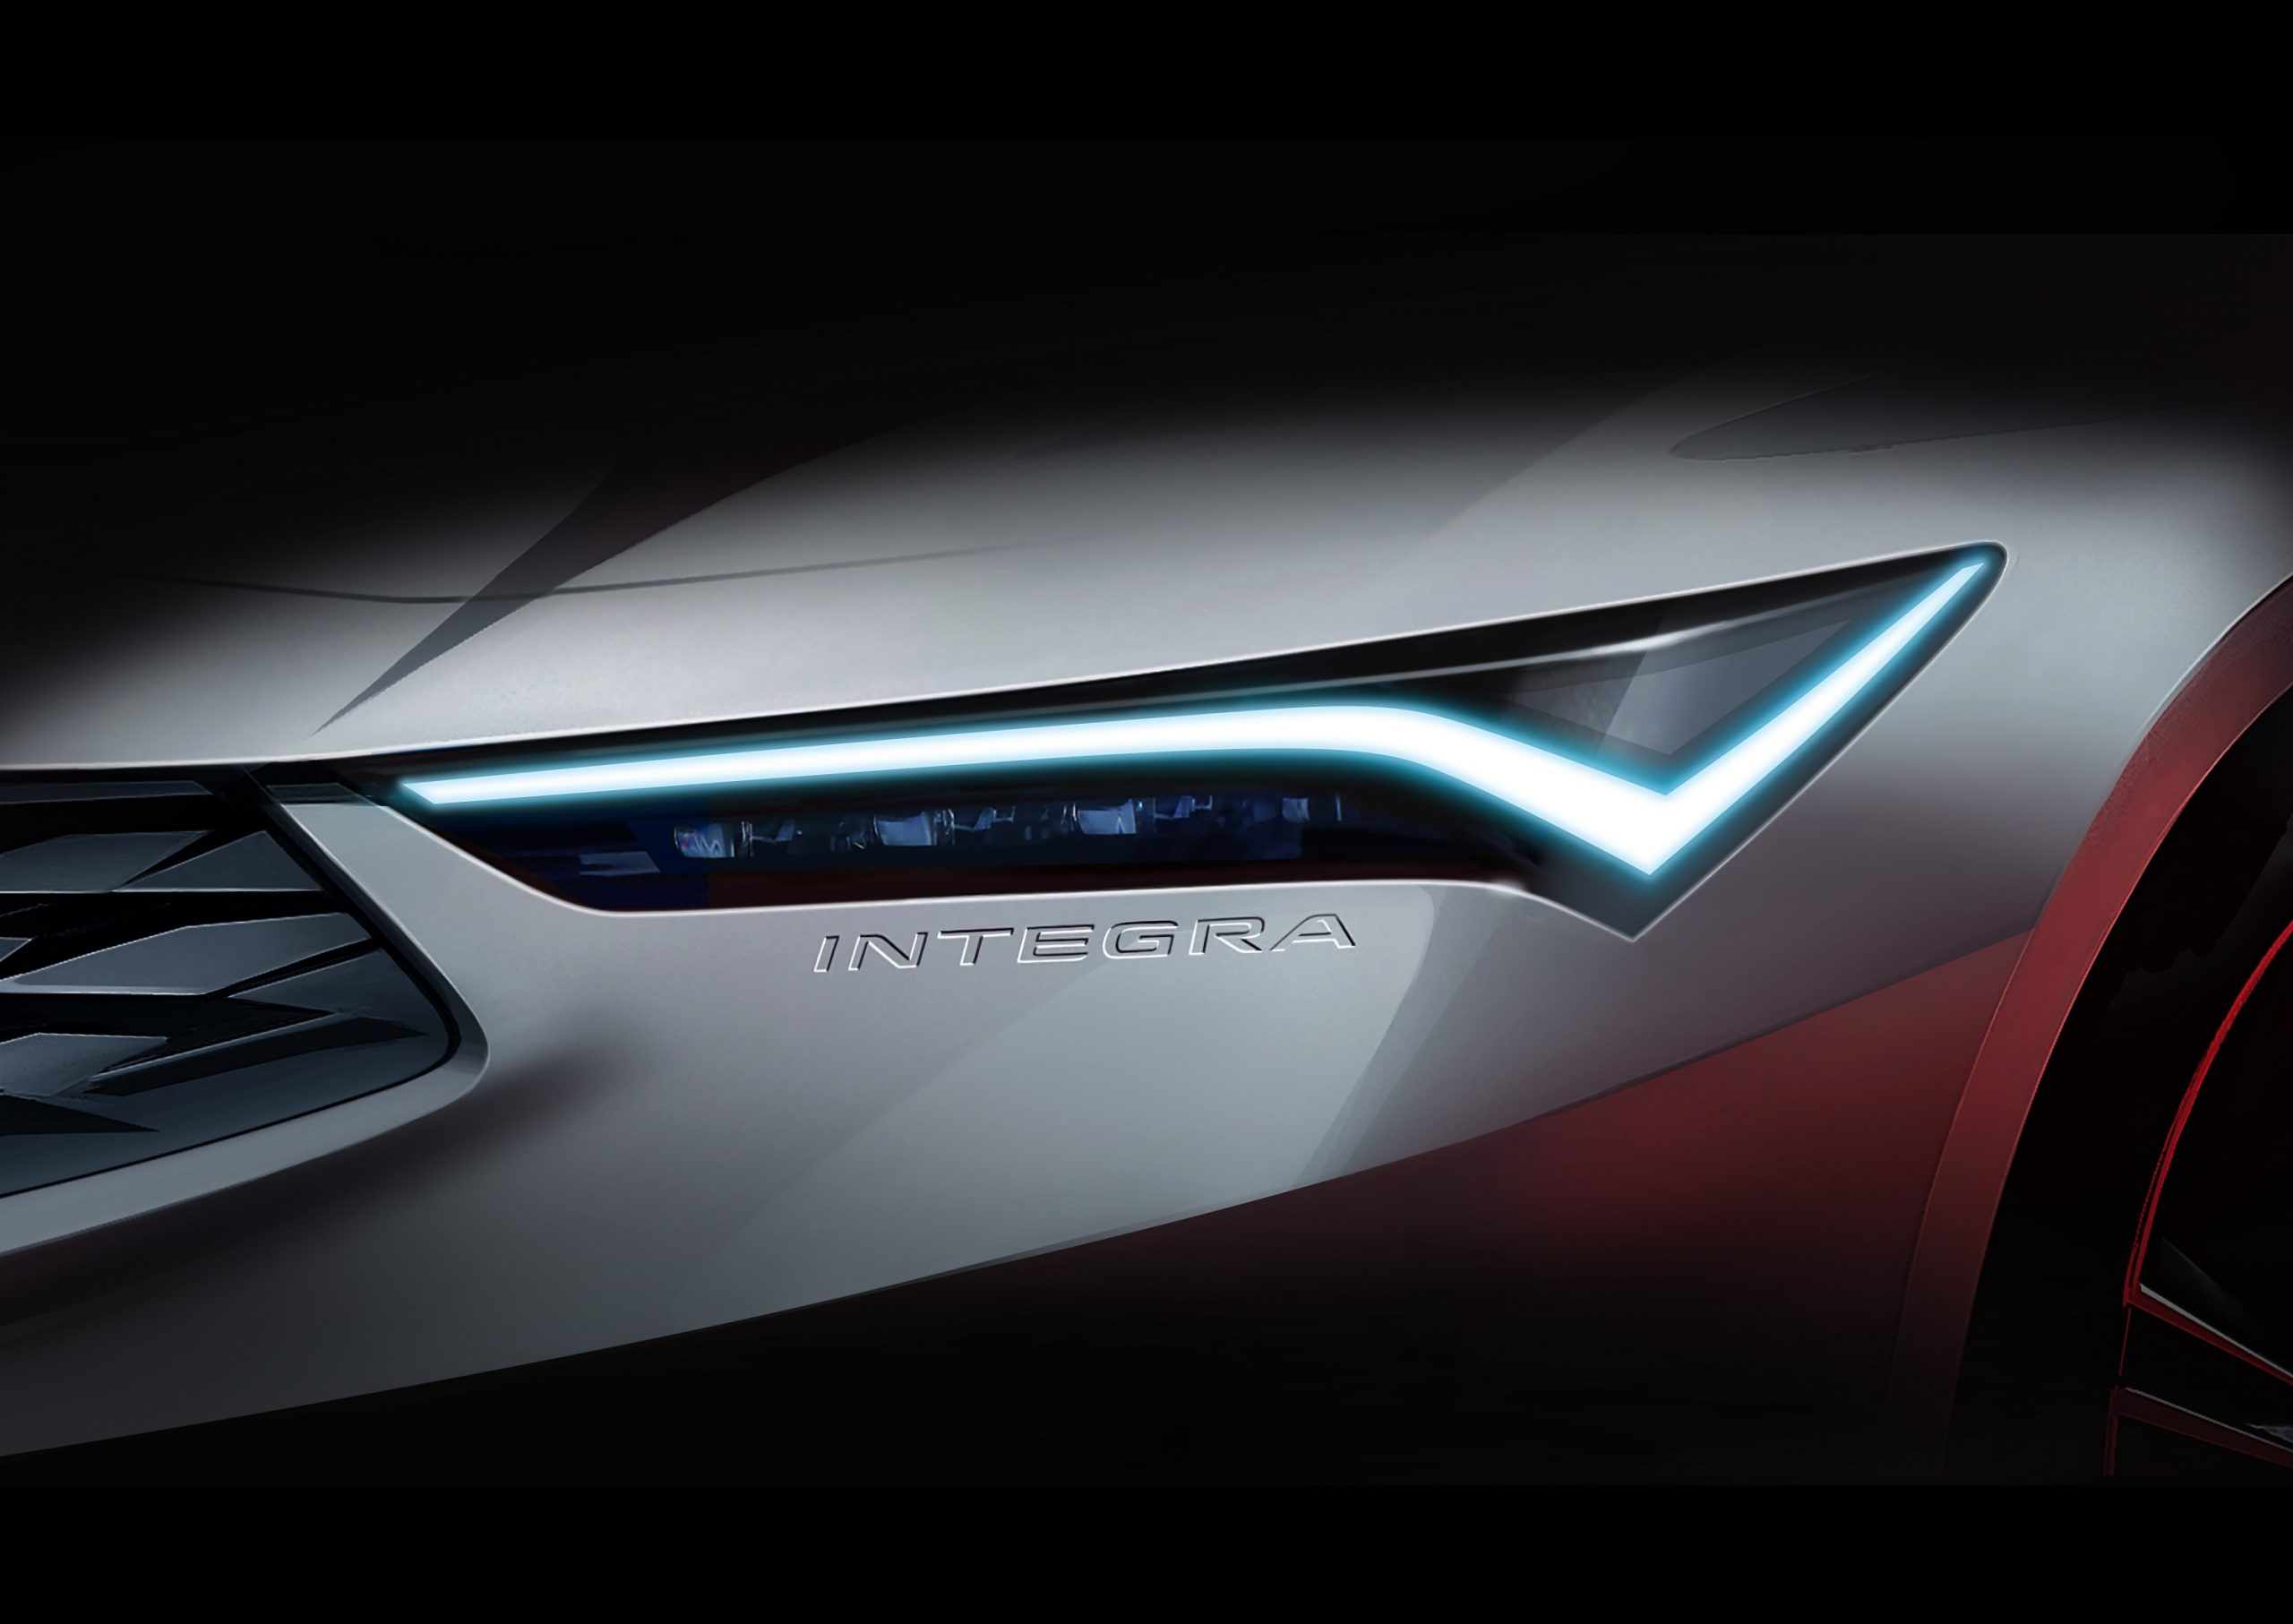 The front headlight of the 2022 Acura Integra in Championship White